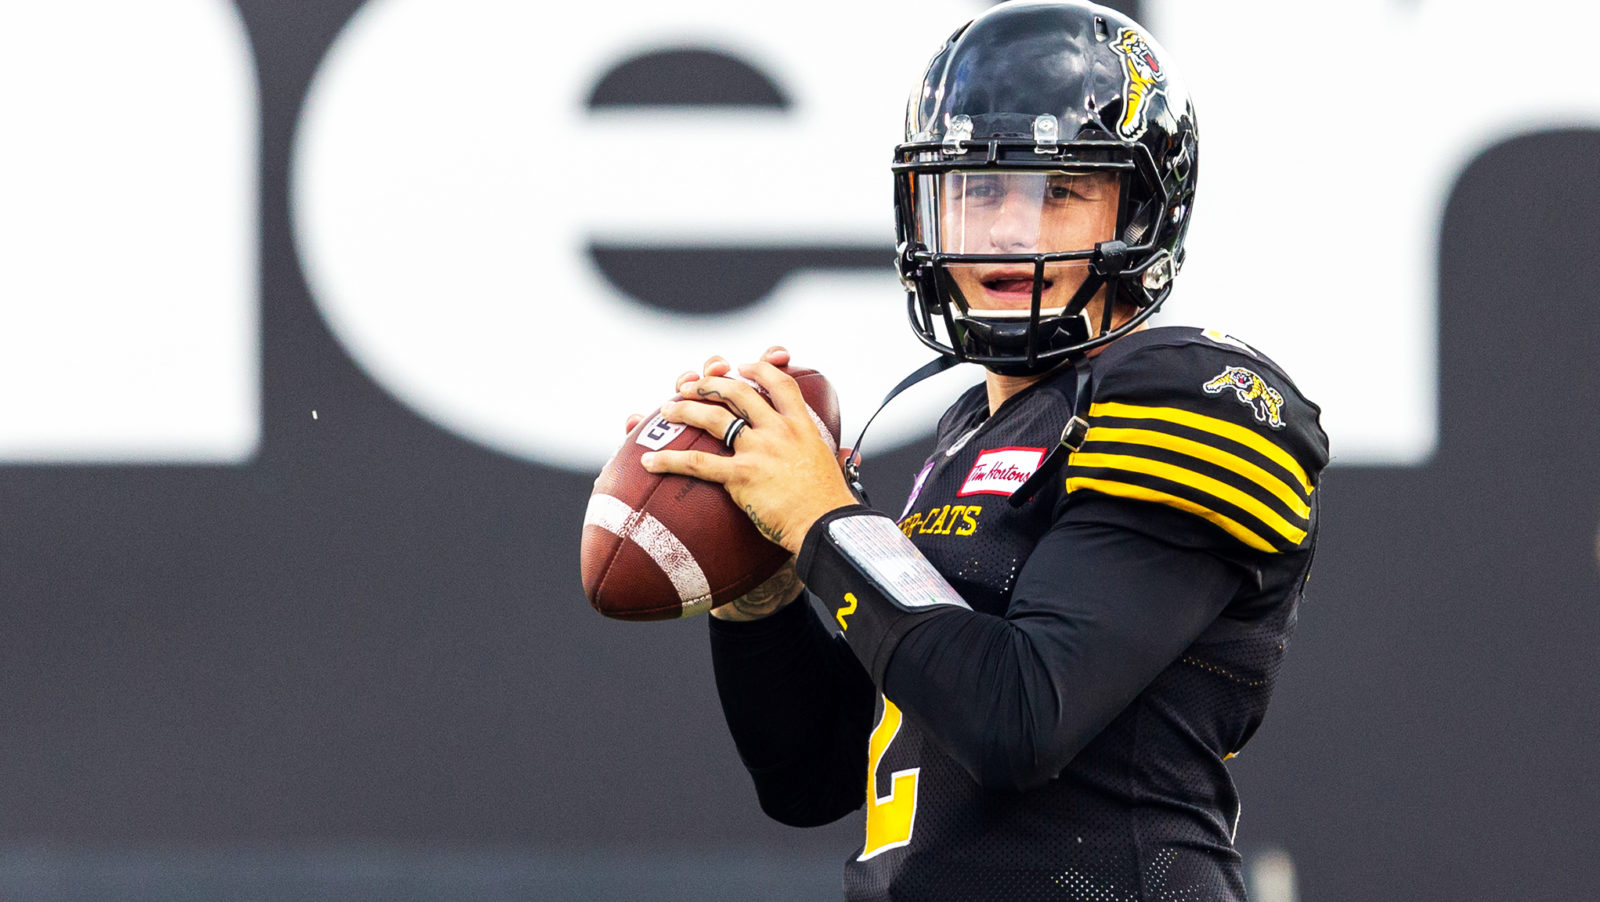 Hamilton Tiger-Cats trade Johnny Manziel to Montreal Alouettes